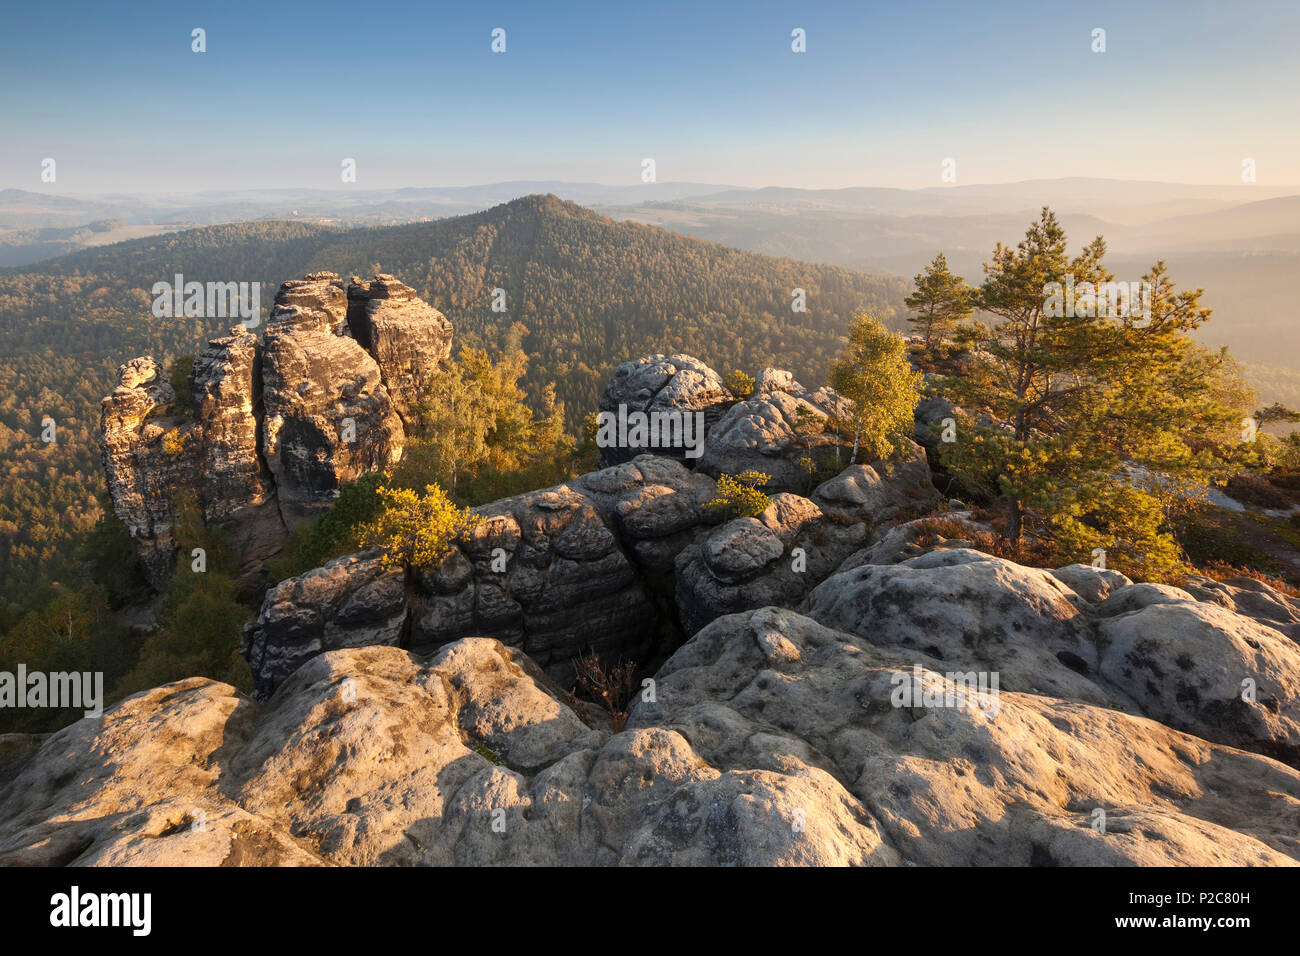 View towards Muellerstein and the Hohe Liebe in the early morning sun with rocks and pine trees in foreground, National Park Sax - Stock Image